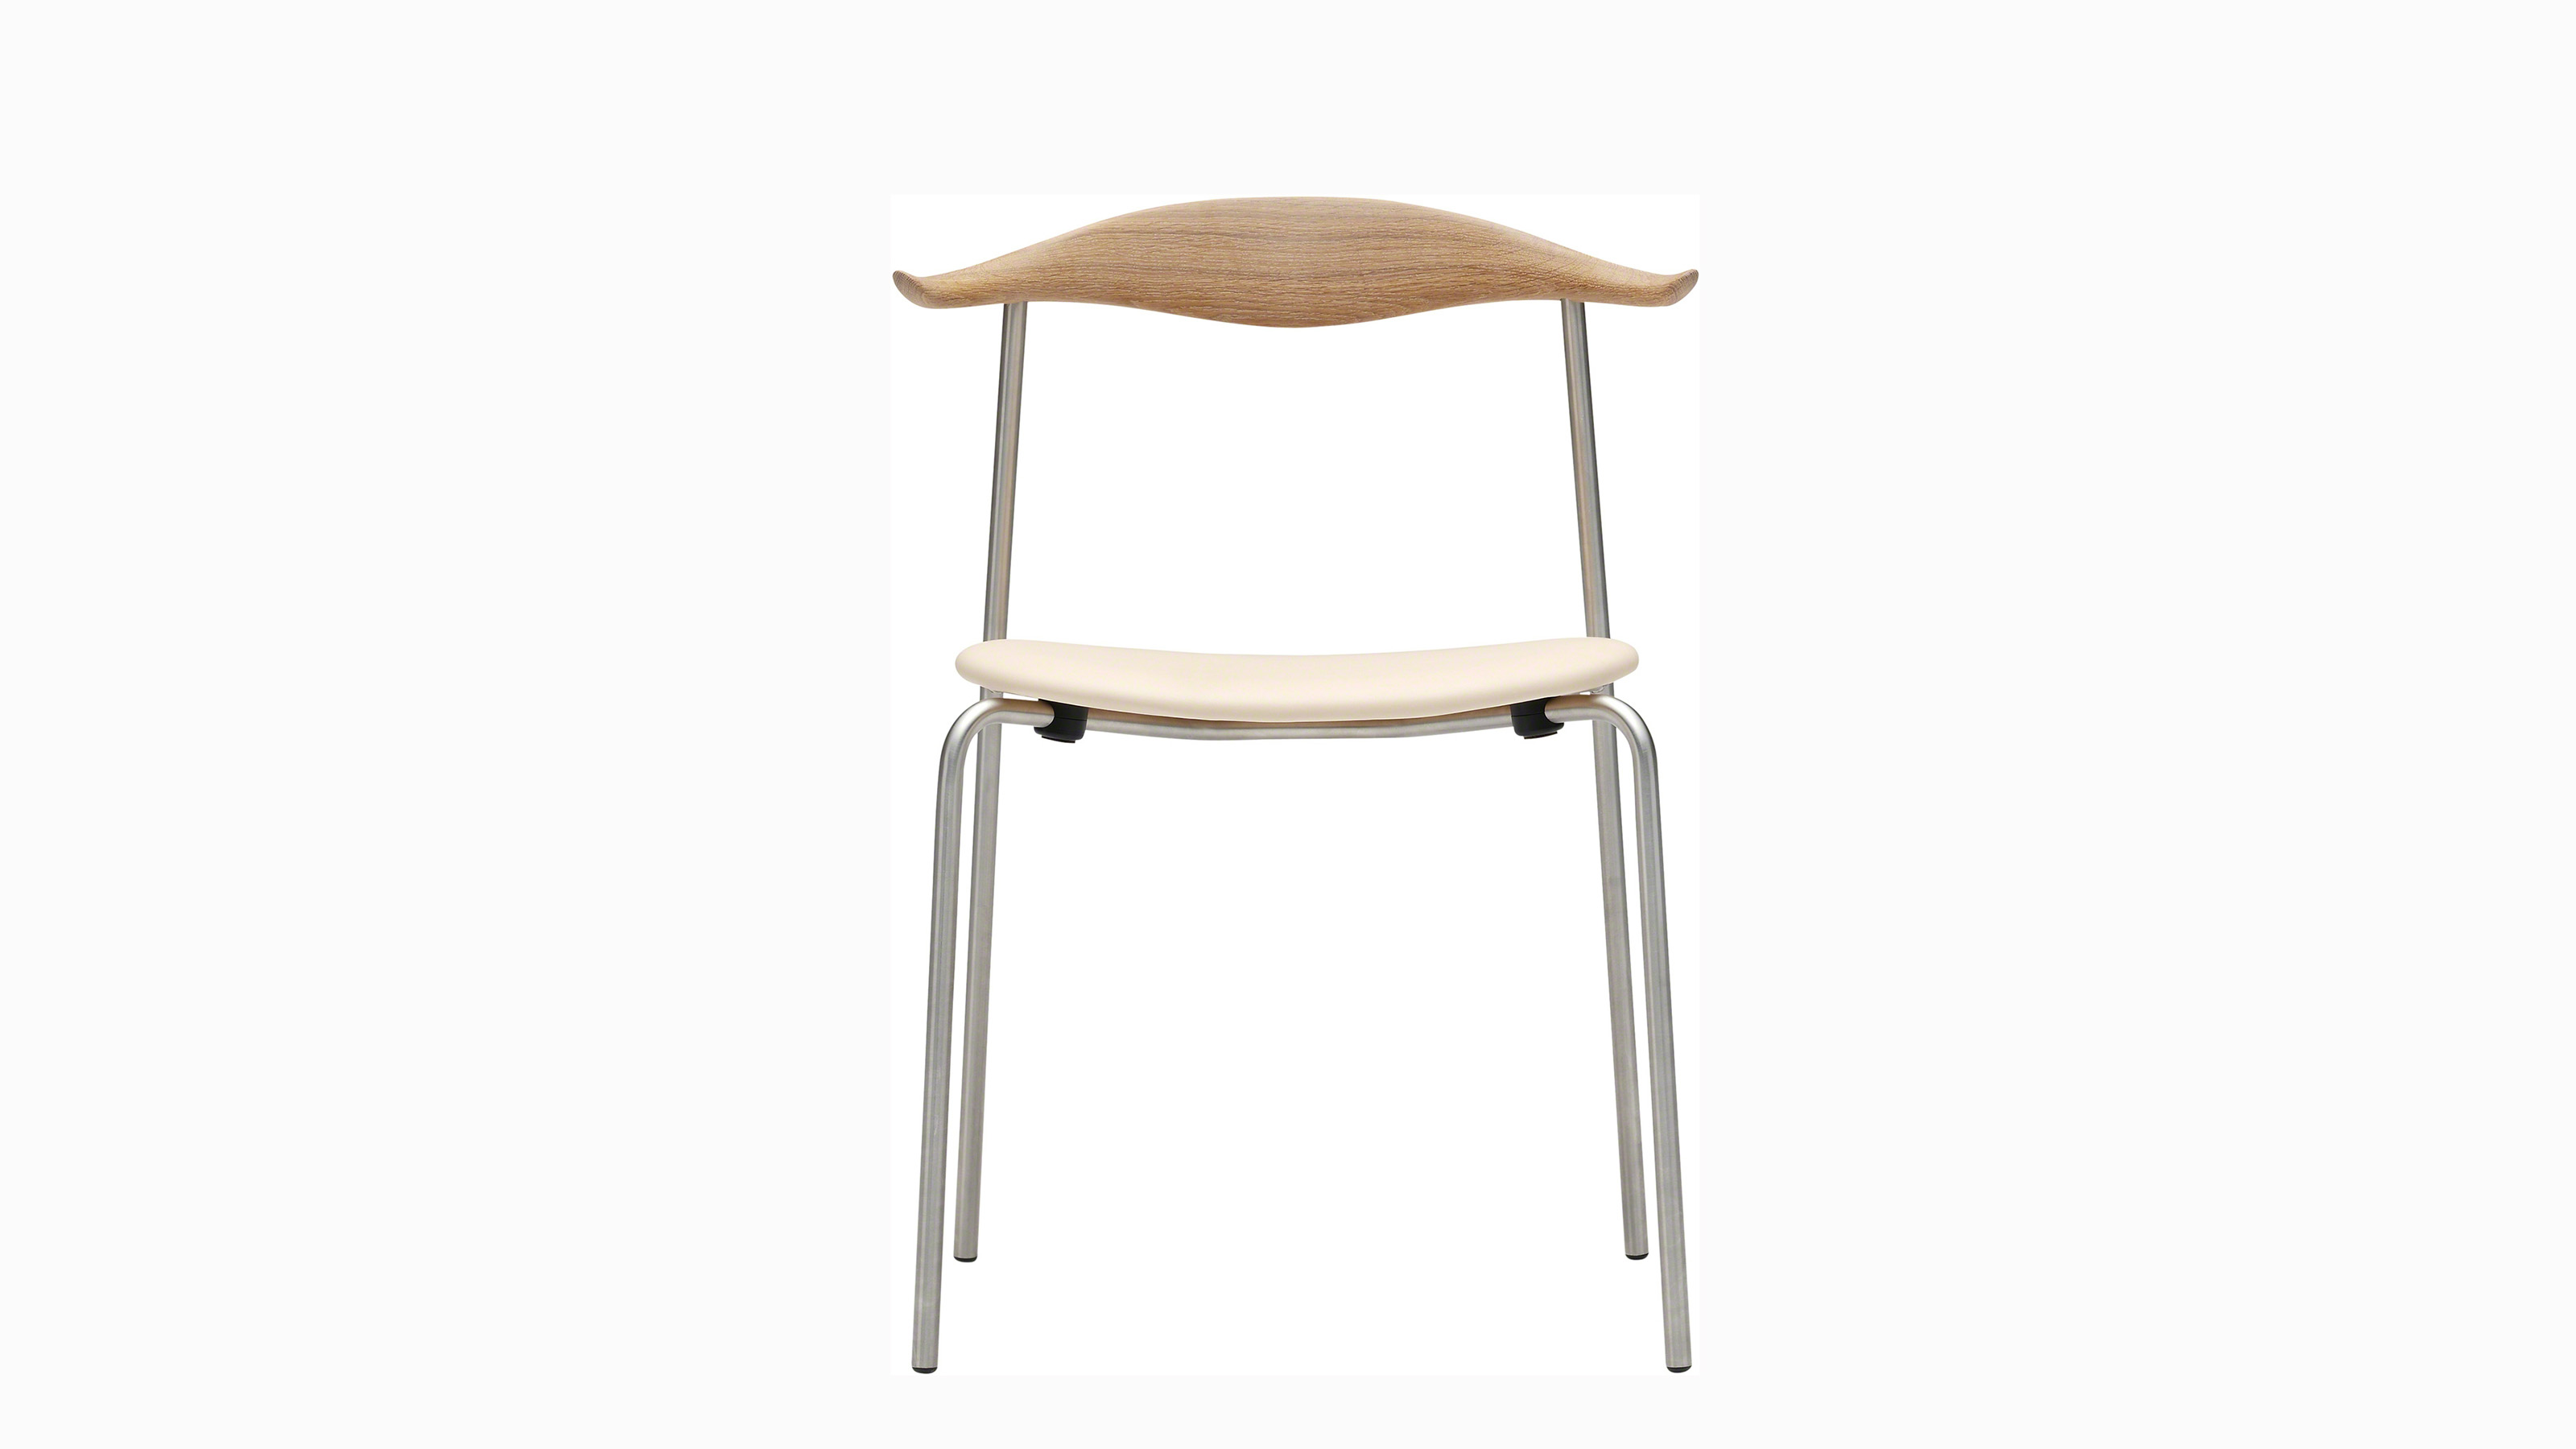 coalesse wrapp chair wooden chairs for dining room guest stools archives missoula s office city free local delivery